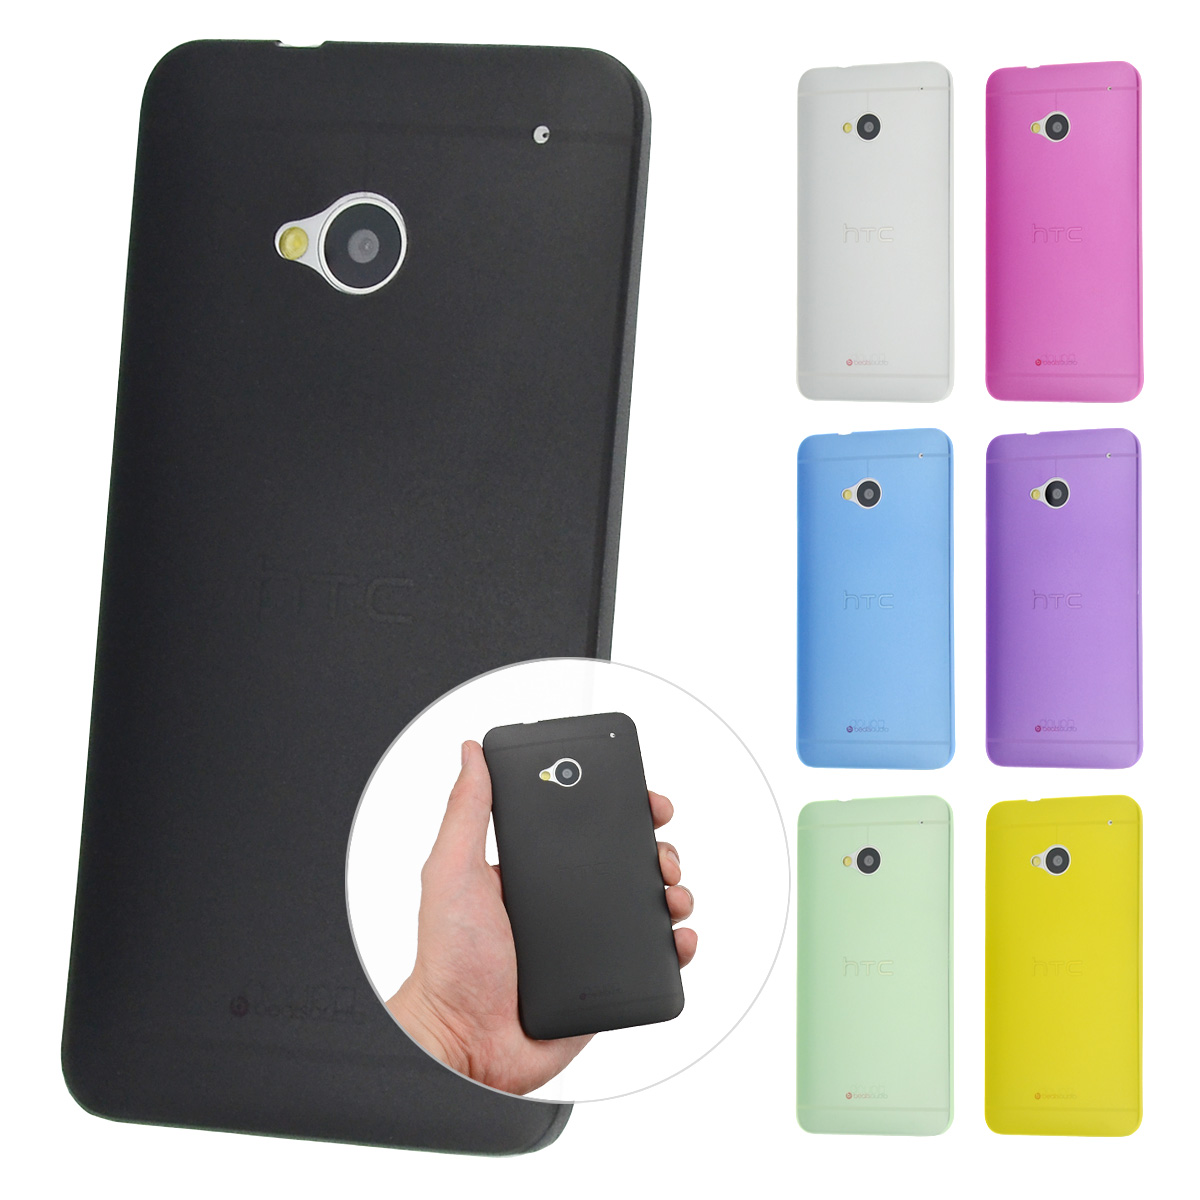 Ultraslim-Case-HTC-One-M8-Fine-Matte-Protective-Case-Skin-Cover-Film thumbnail 9